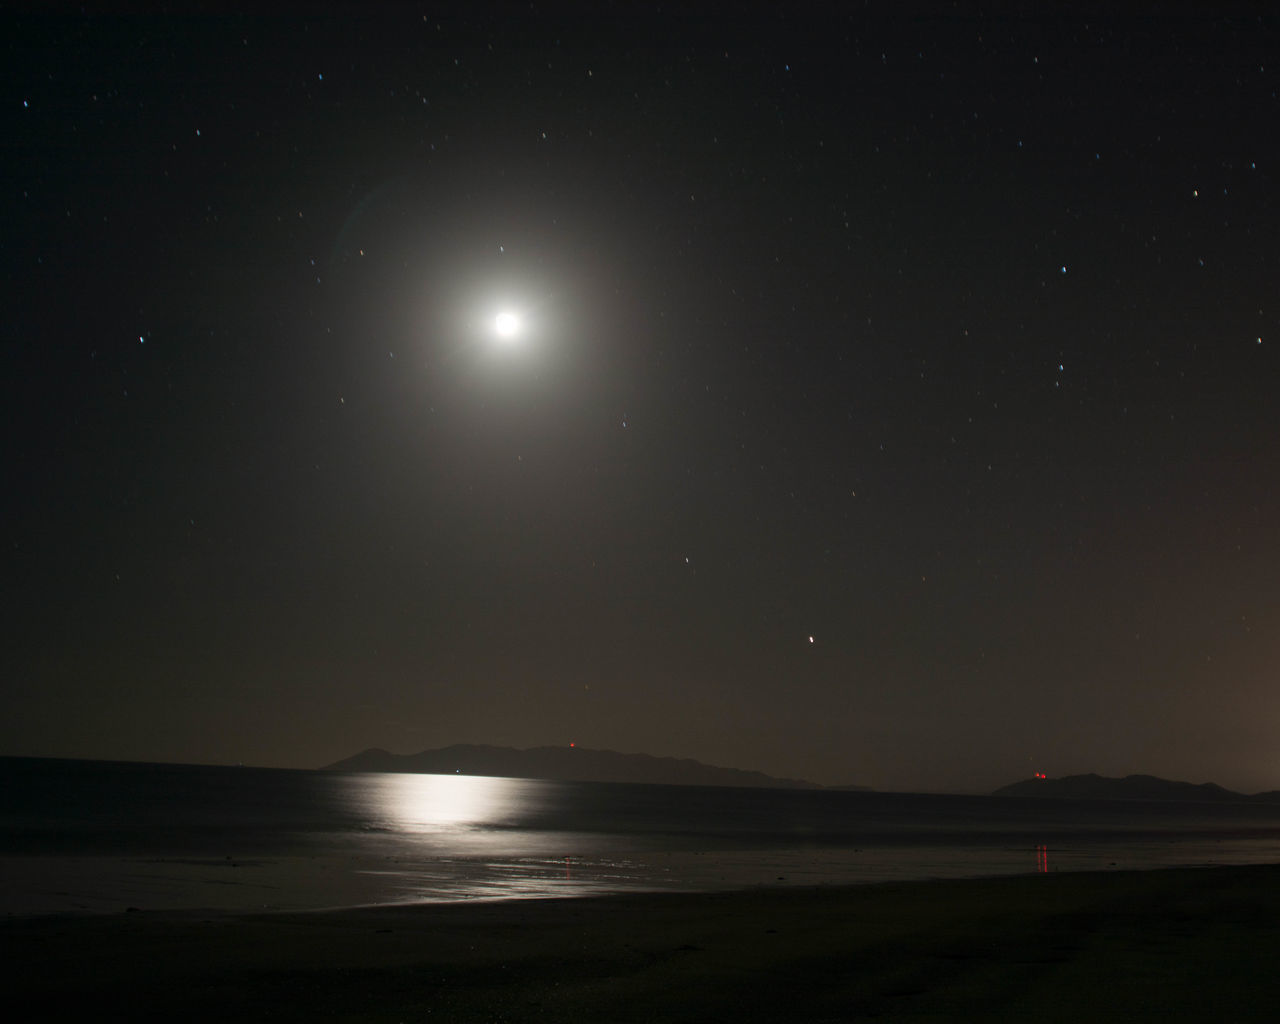 Moon light on the beach Astronomy Beach Beauty In Nature Chilling Enjoying Life Galaxy Moon Moon Moonlight Nature Night No People Outdoors Reflections In The Water Relaxing Scenics Sea Sky Softness Space Star - Space Taking Photos Taking Pictures